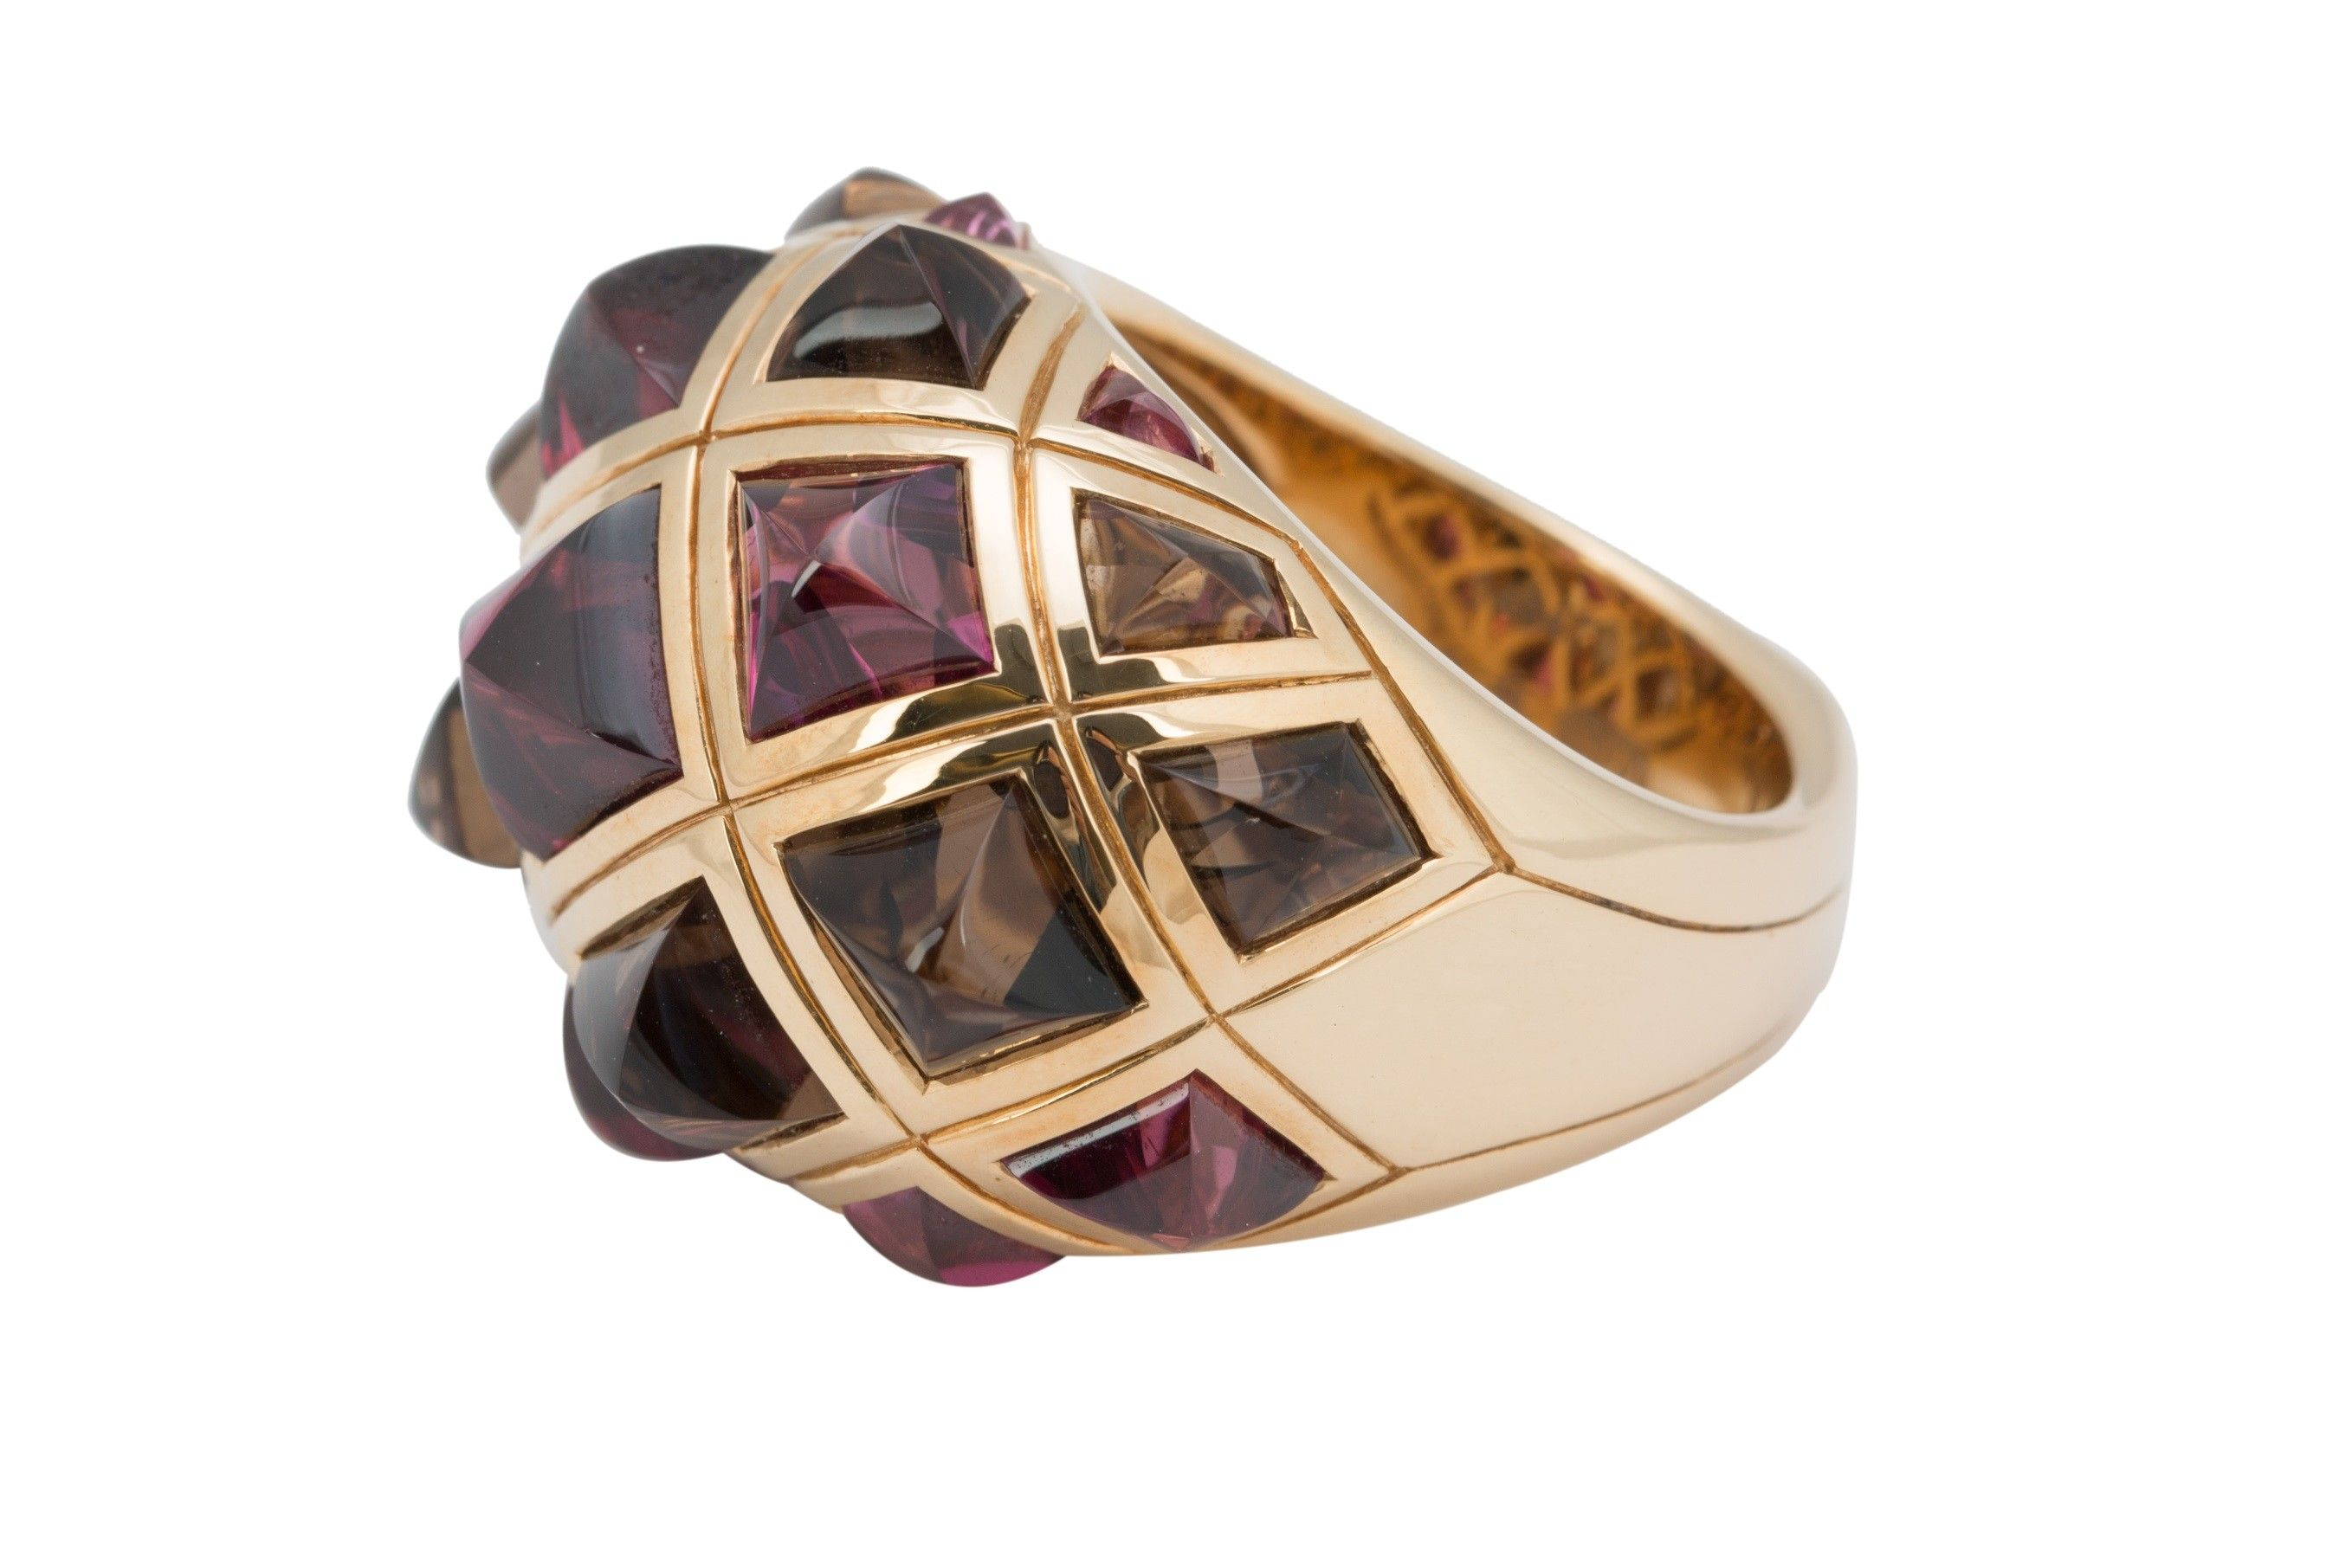 Stephen Webster 18K Yellow Gold Amethyst and Smokey Topaz Ring - This Stephen Webster 18K Yellow Gold Amethyst and Smokey Topaz Ring is in overall Excellent condition with no visible signs of wear. This is a ring size 7. It is approximately 22 mm wide and sits approximately 12 mm high.